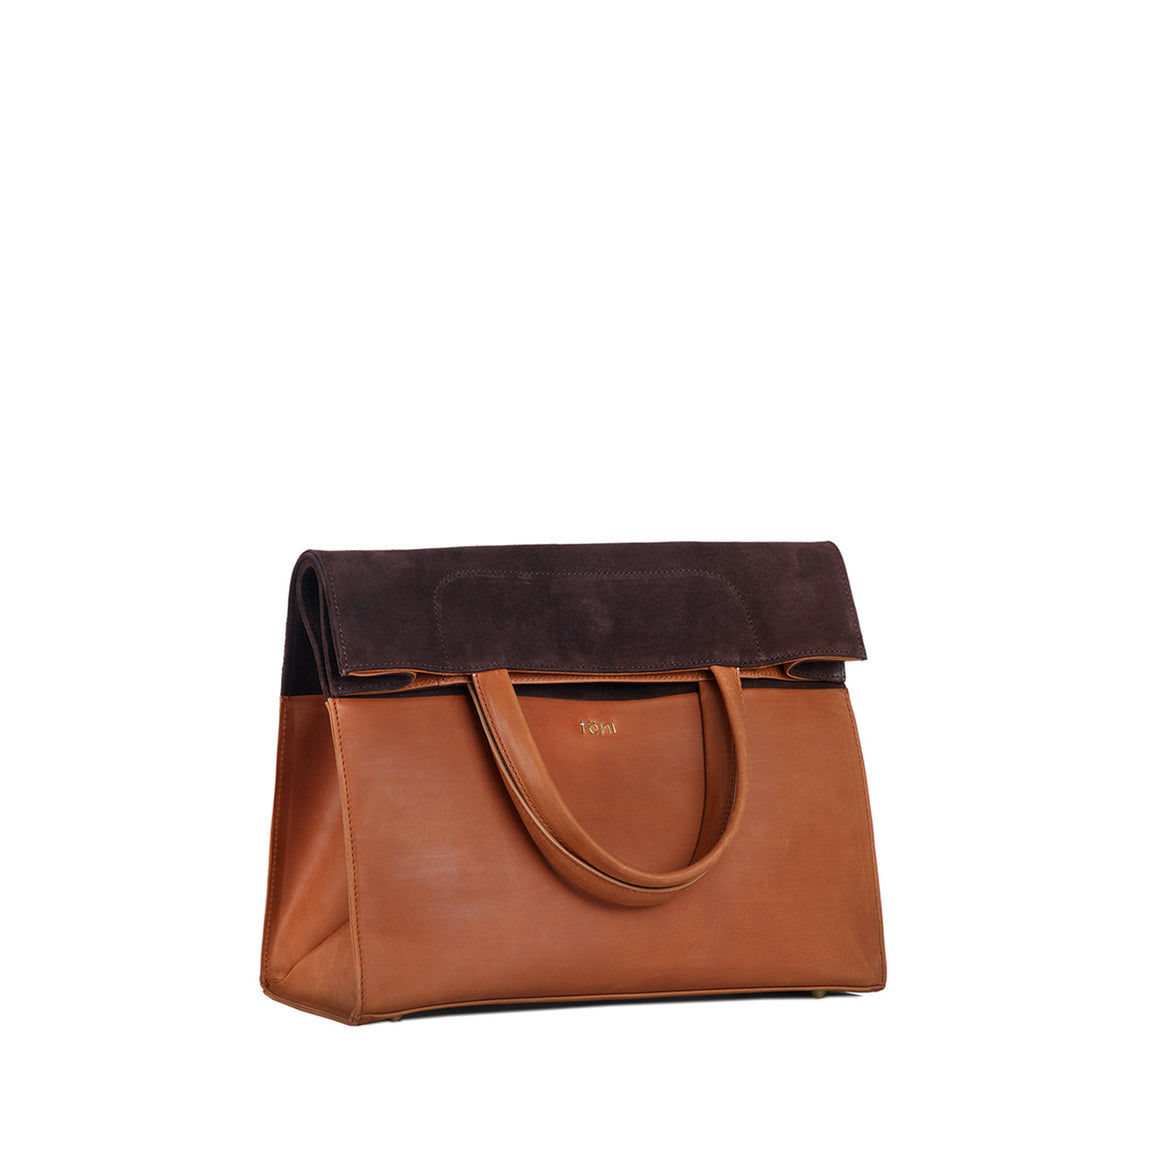 TT 0004 - TOHL TERRY WOMEN'S HAND BAG - TAN